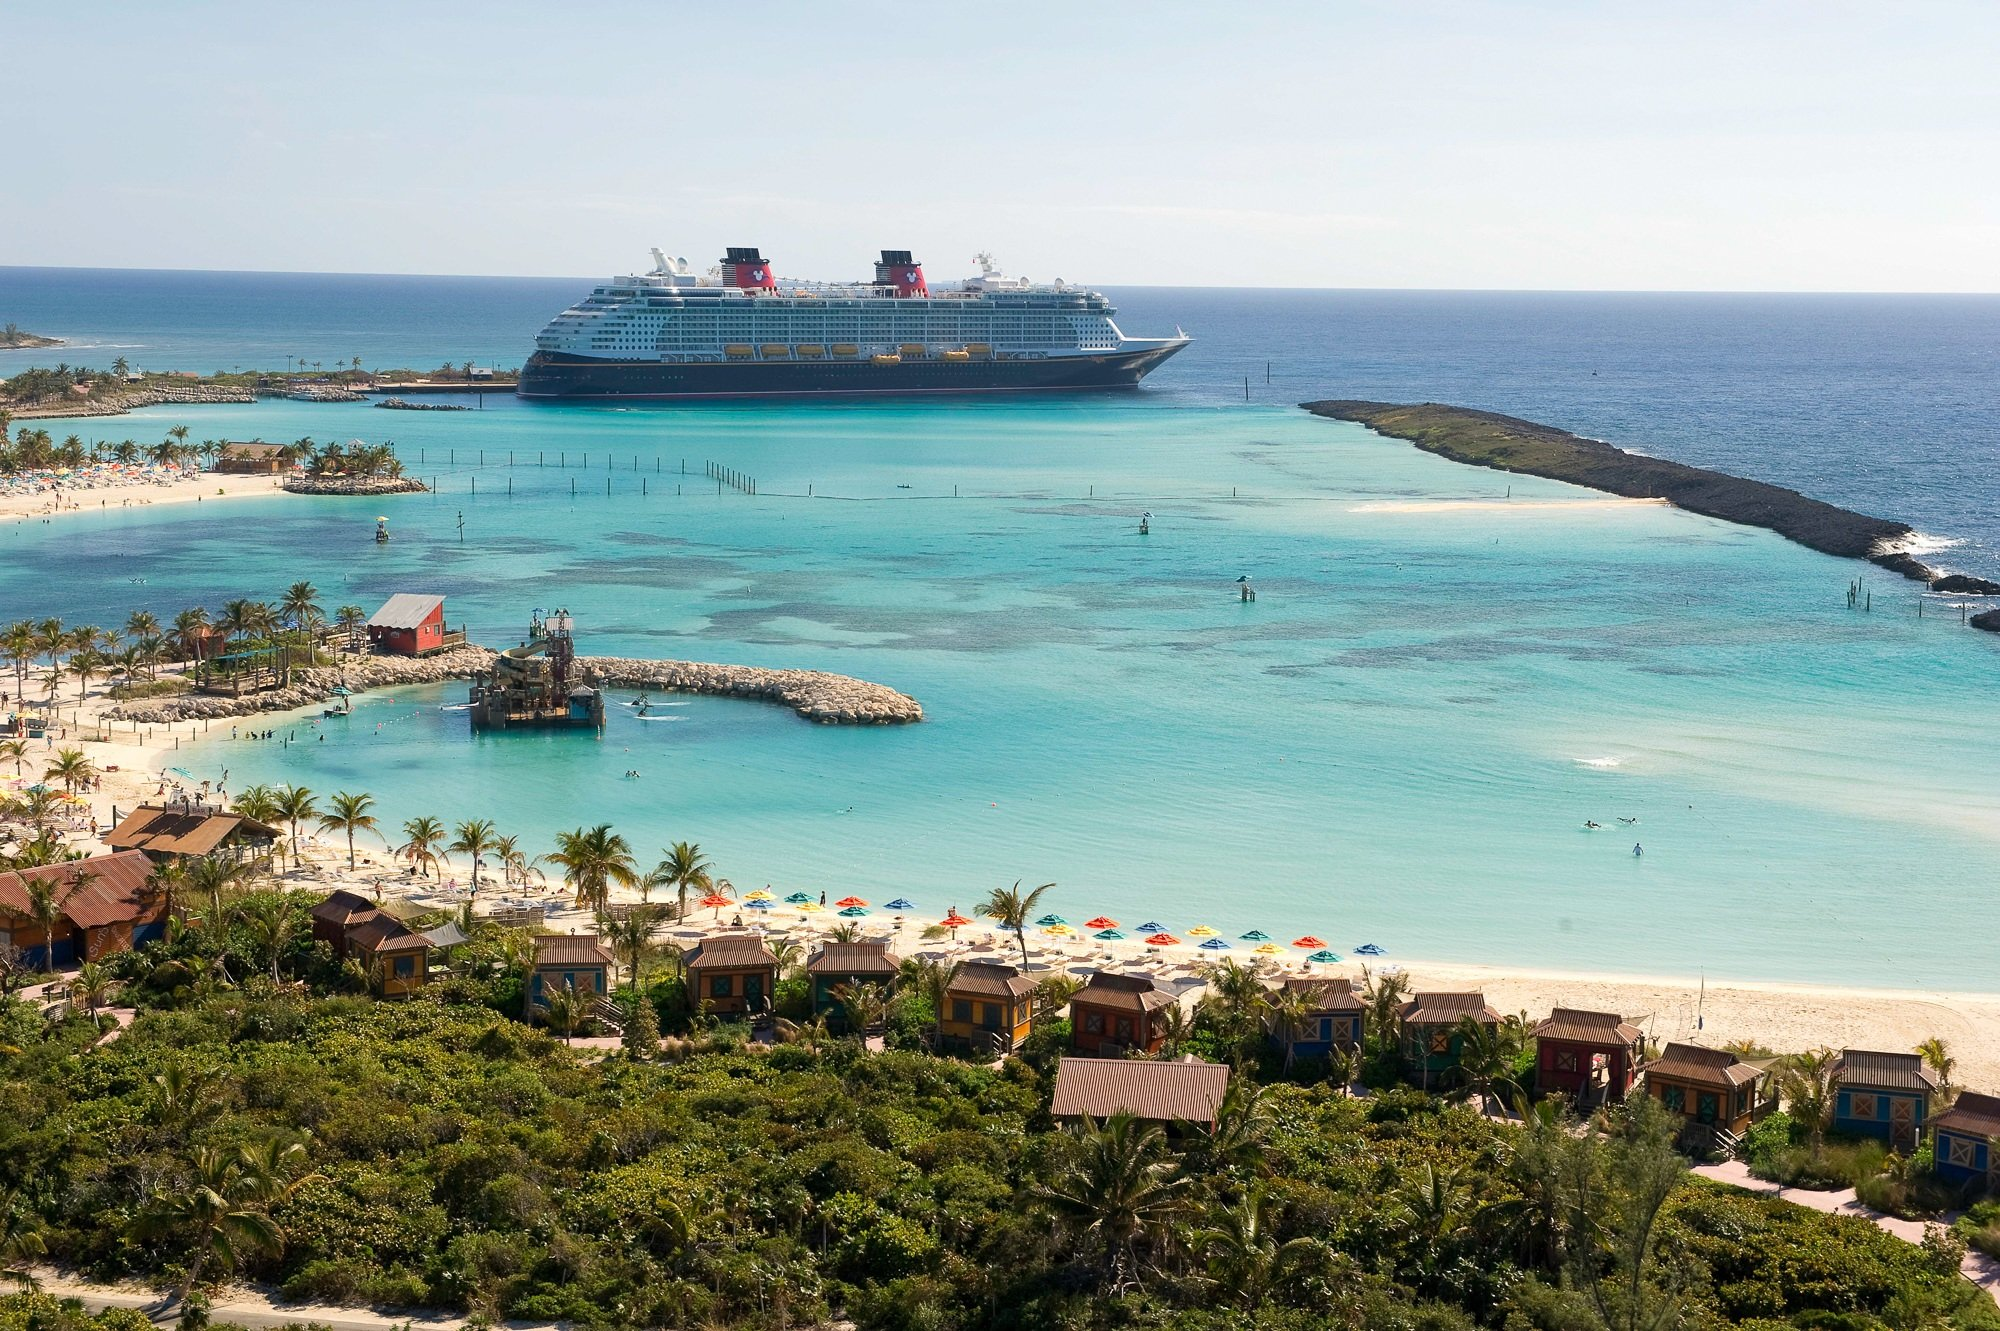 Disney Dream docked at Disney's Castaway Cay